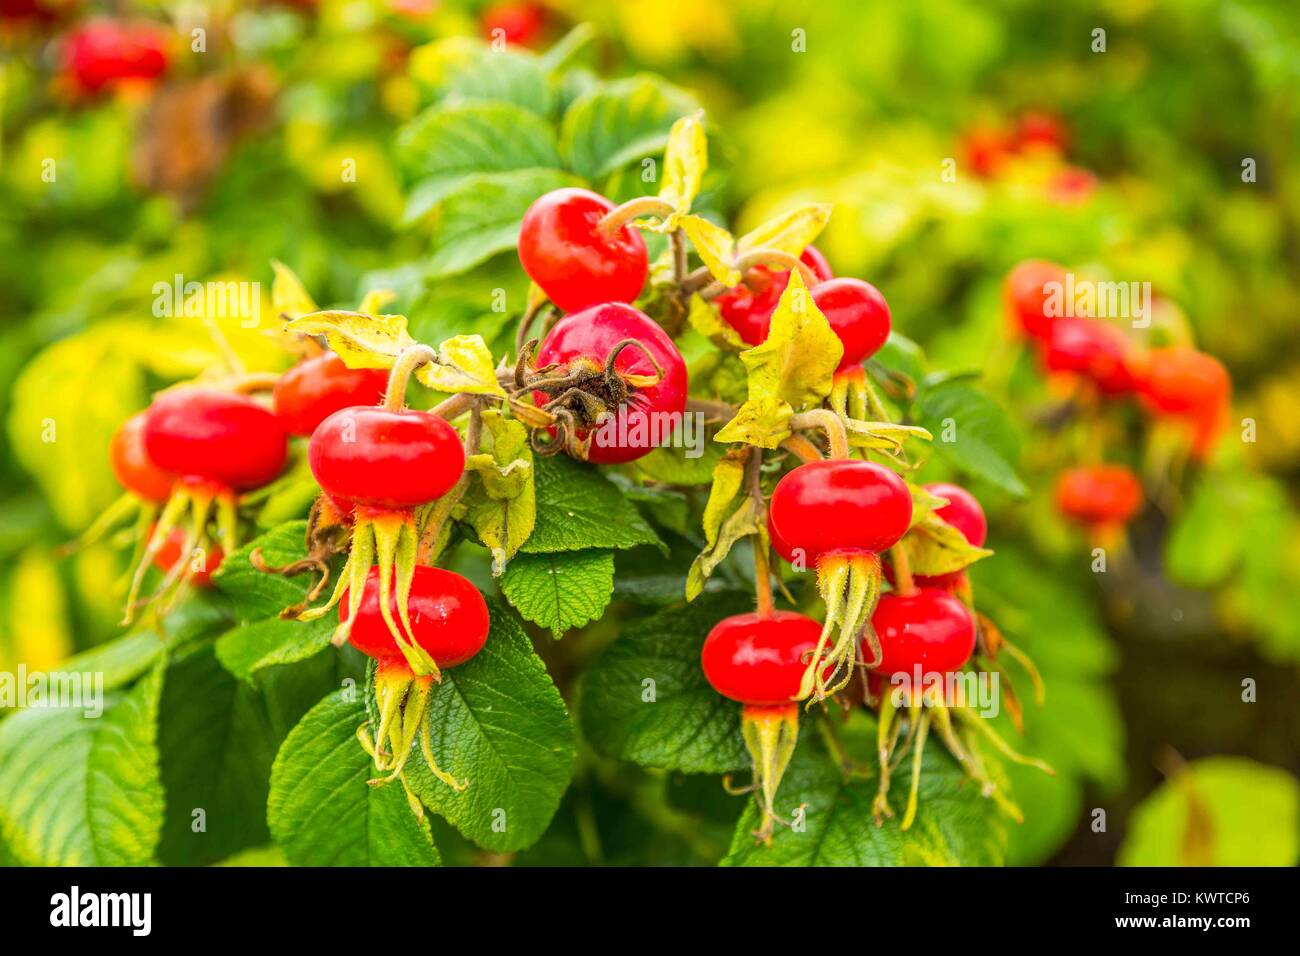 Bunch of rosy red rose hips in a cluster. - Stock Image